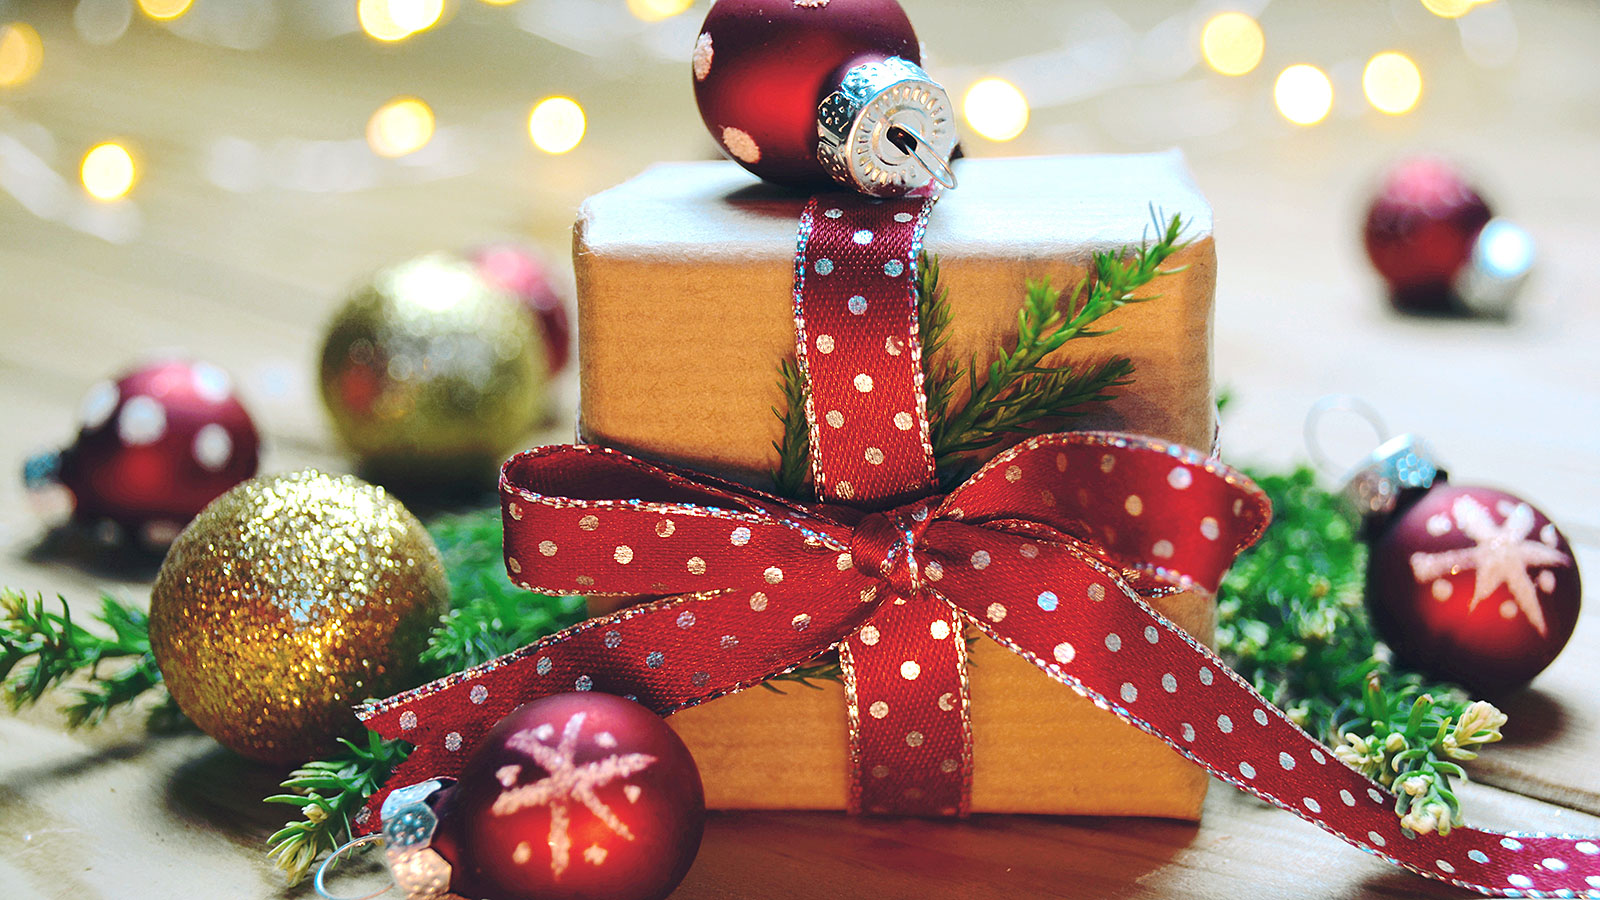 Simple ways to have yourself an eco friendly Christmas